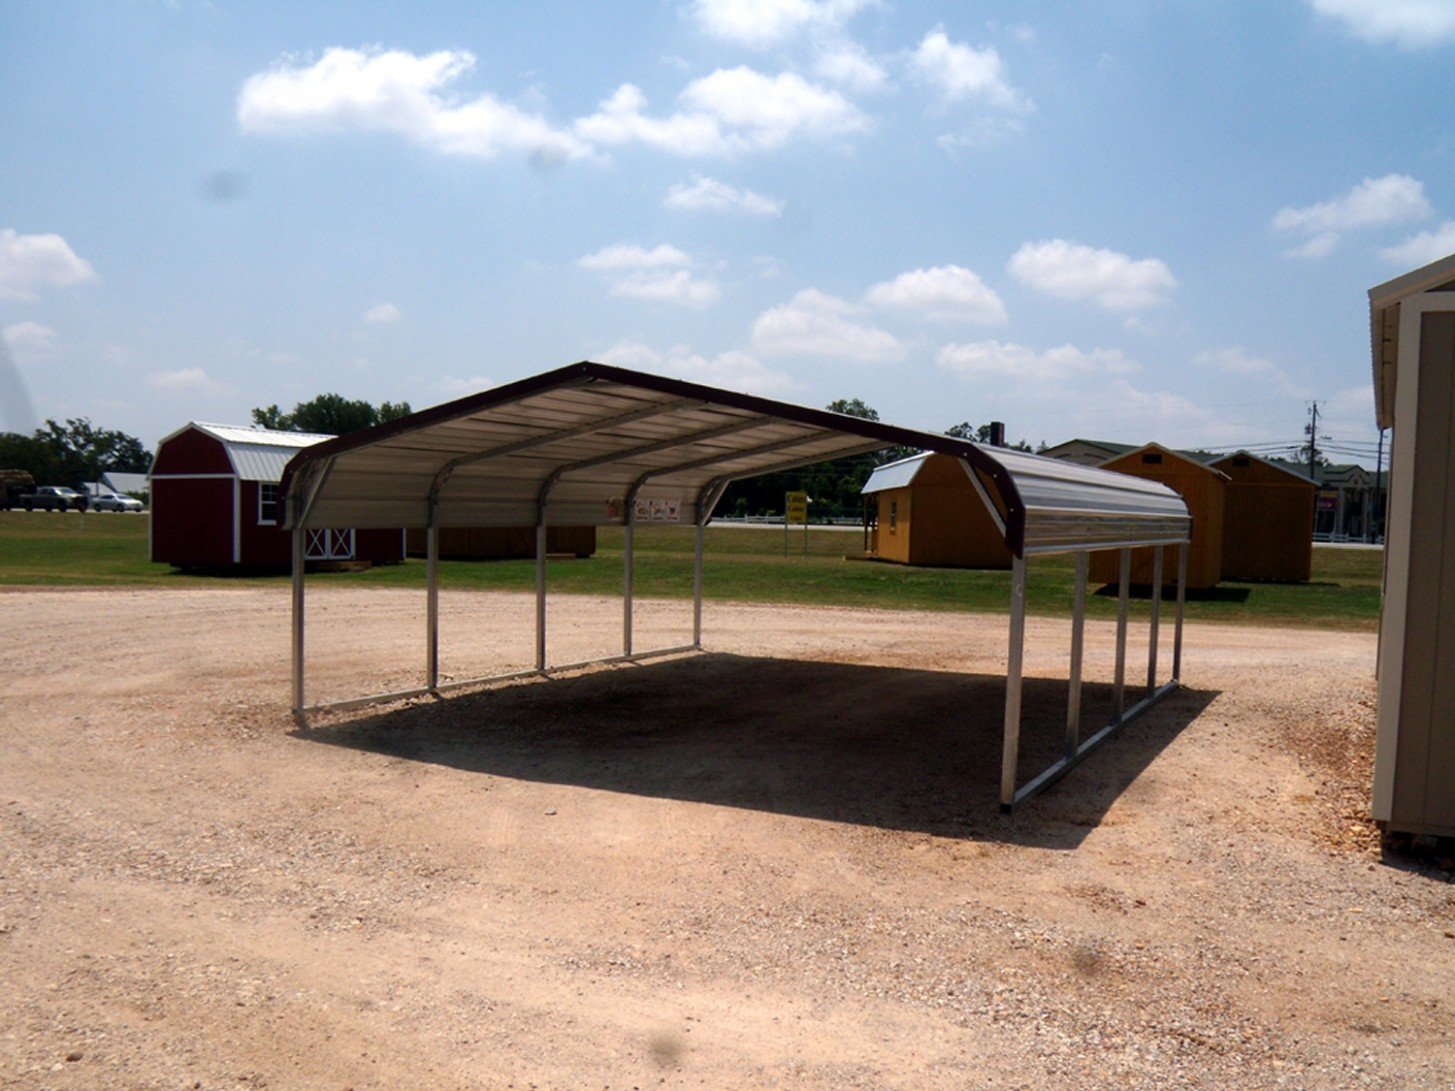 How I Successfuly Organized My Very Own 11 Car Aluminum Carport | 11 car aluminum carport